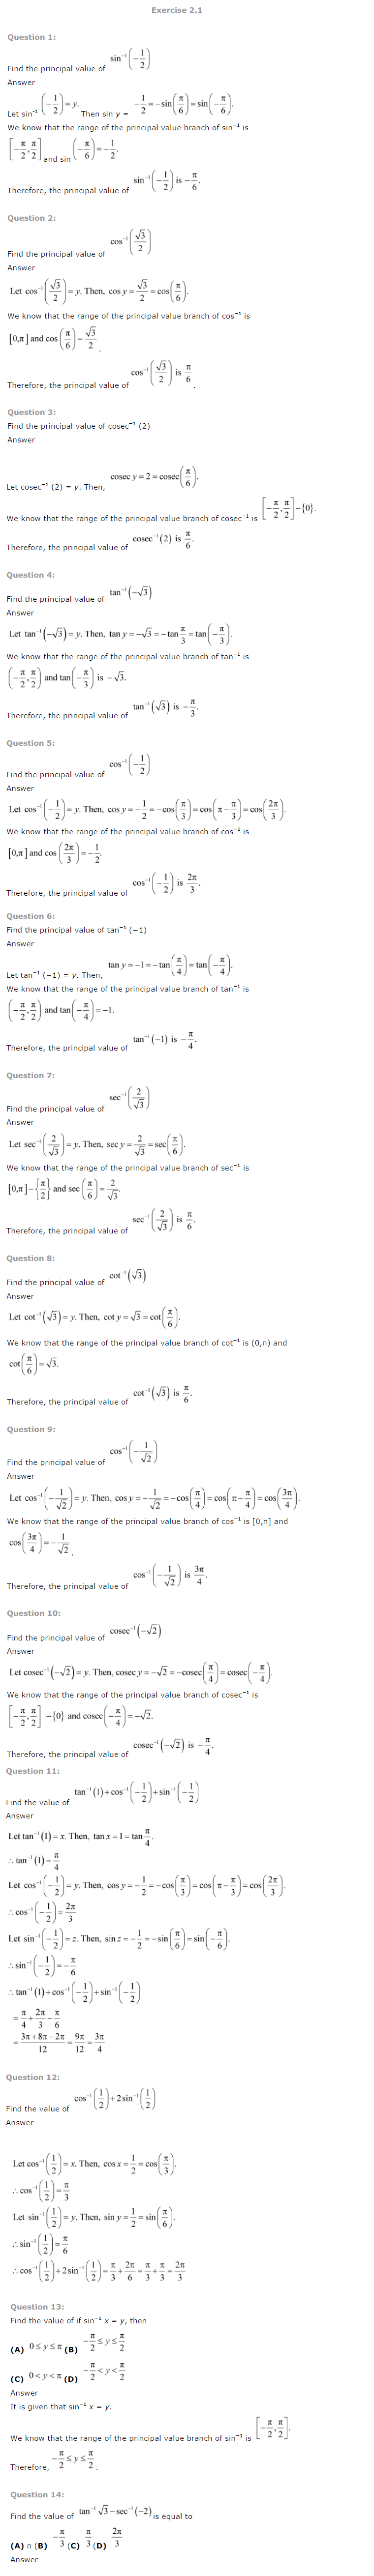 NCERT Solutions For Class 12 Maths Chapter 2 Inverse Trigonometric Functions 1